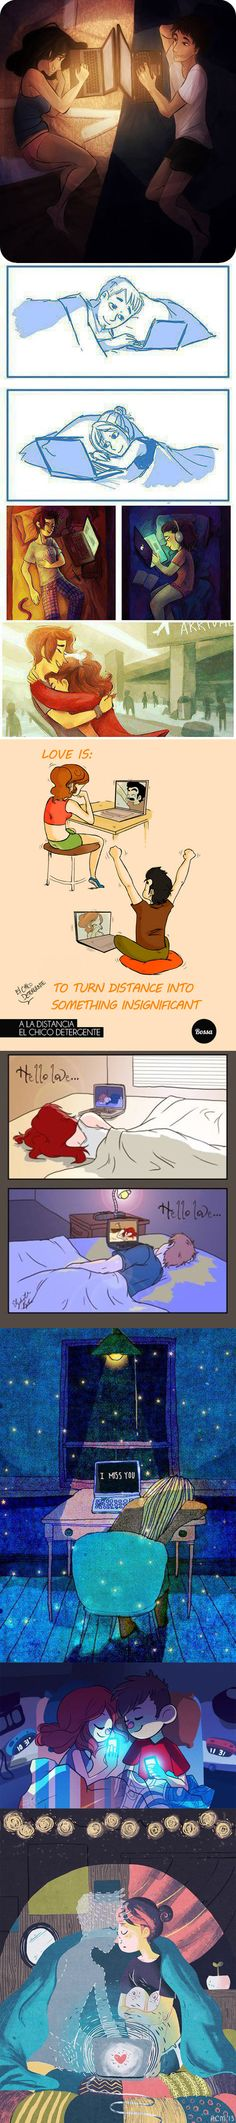 Long distance relationships are hard but worth it…Glad next year wont be like this for me at least